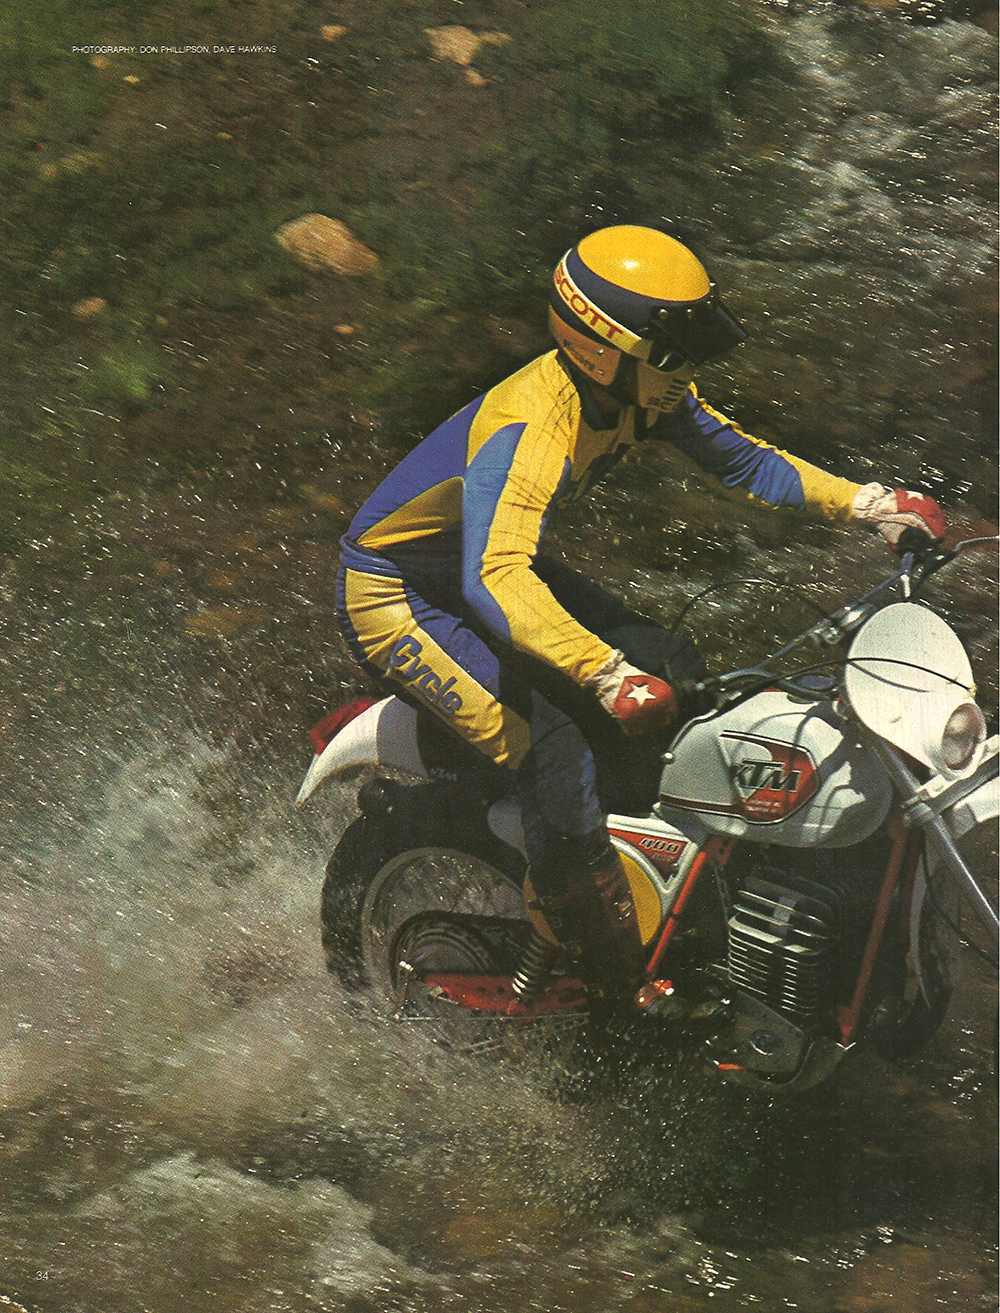 1978 KTM 400 MC5 road test 01.jpg